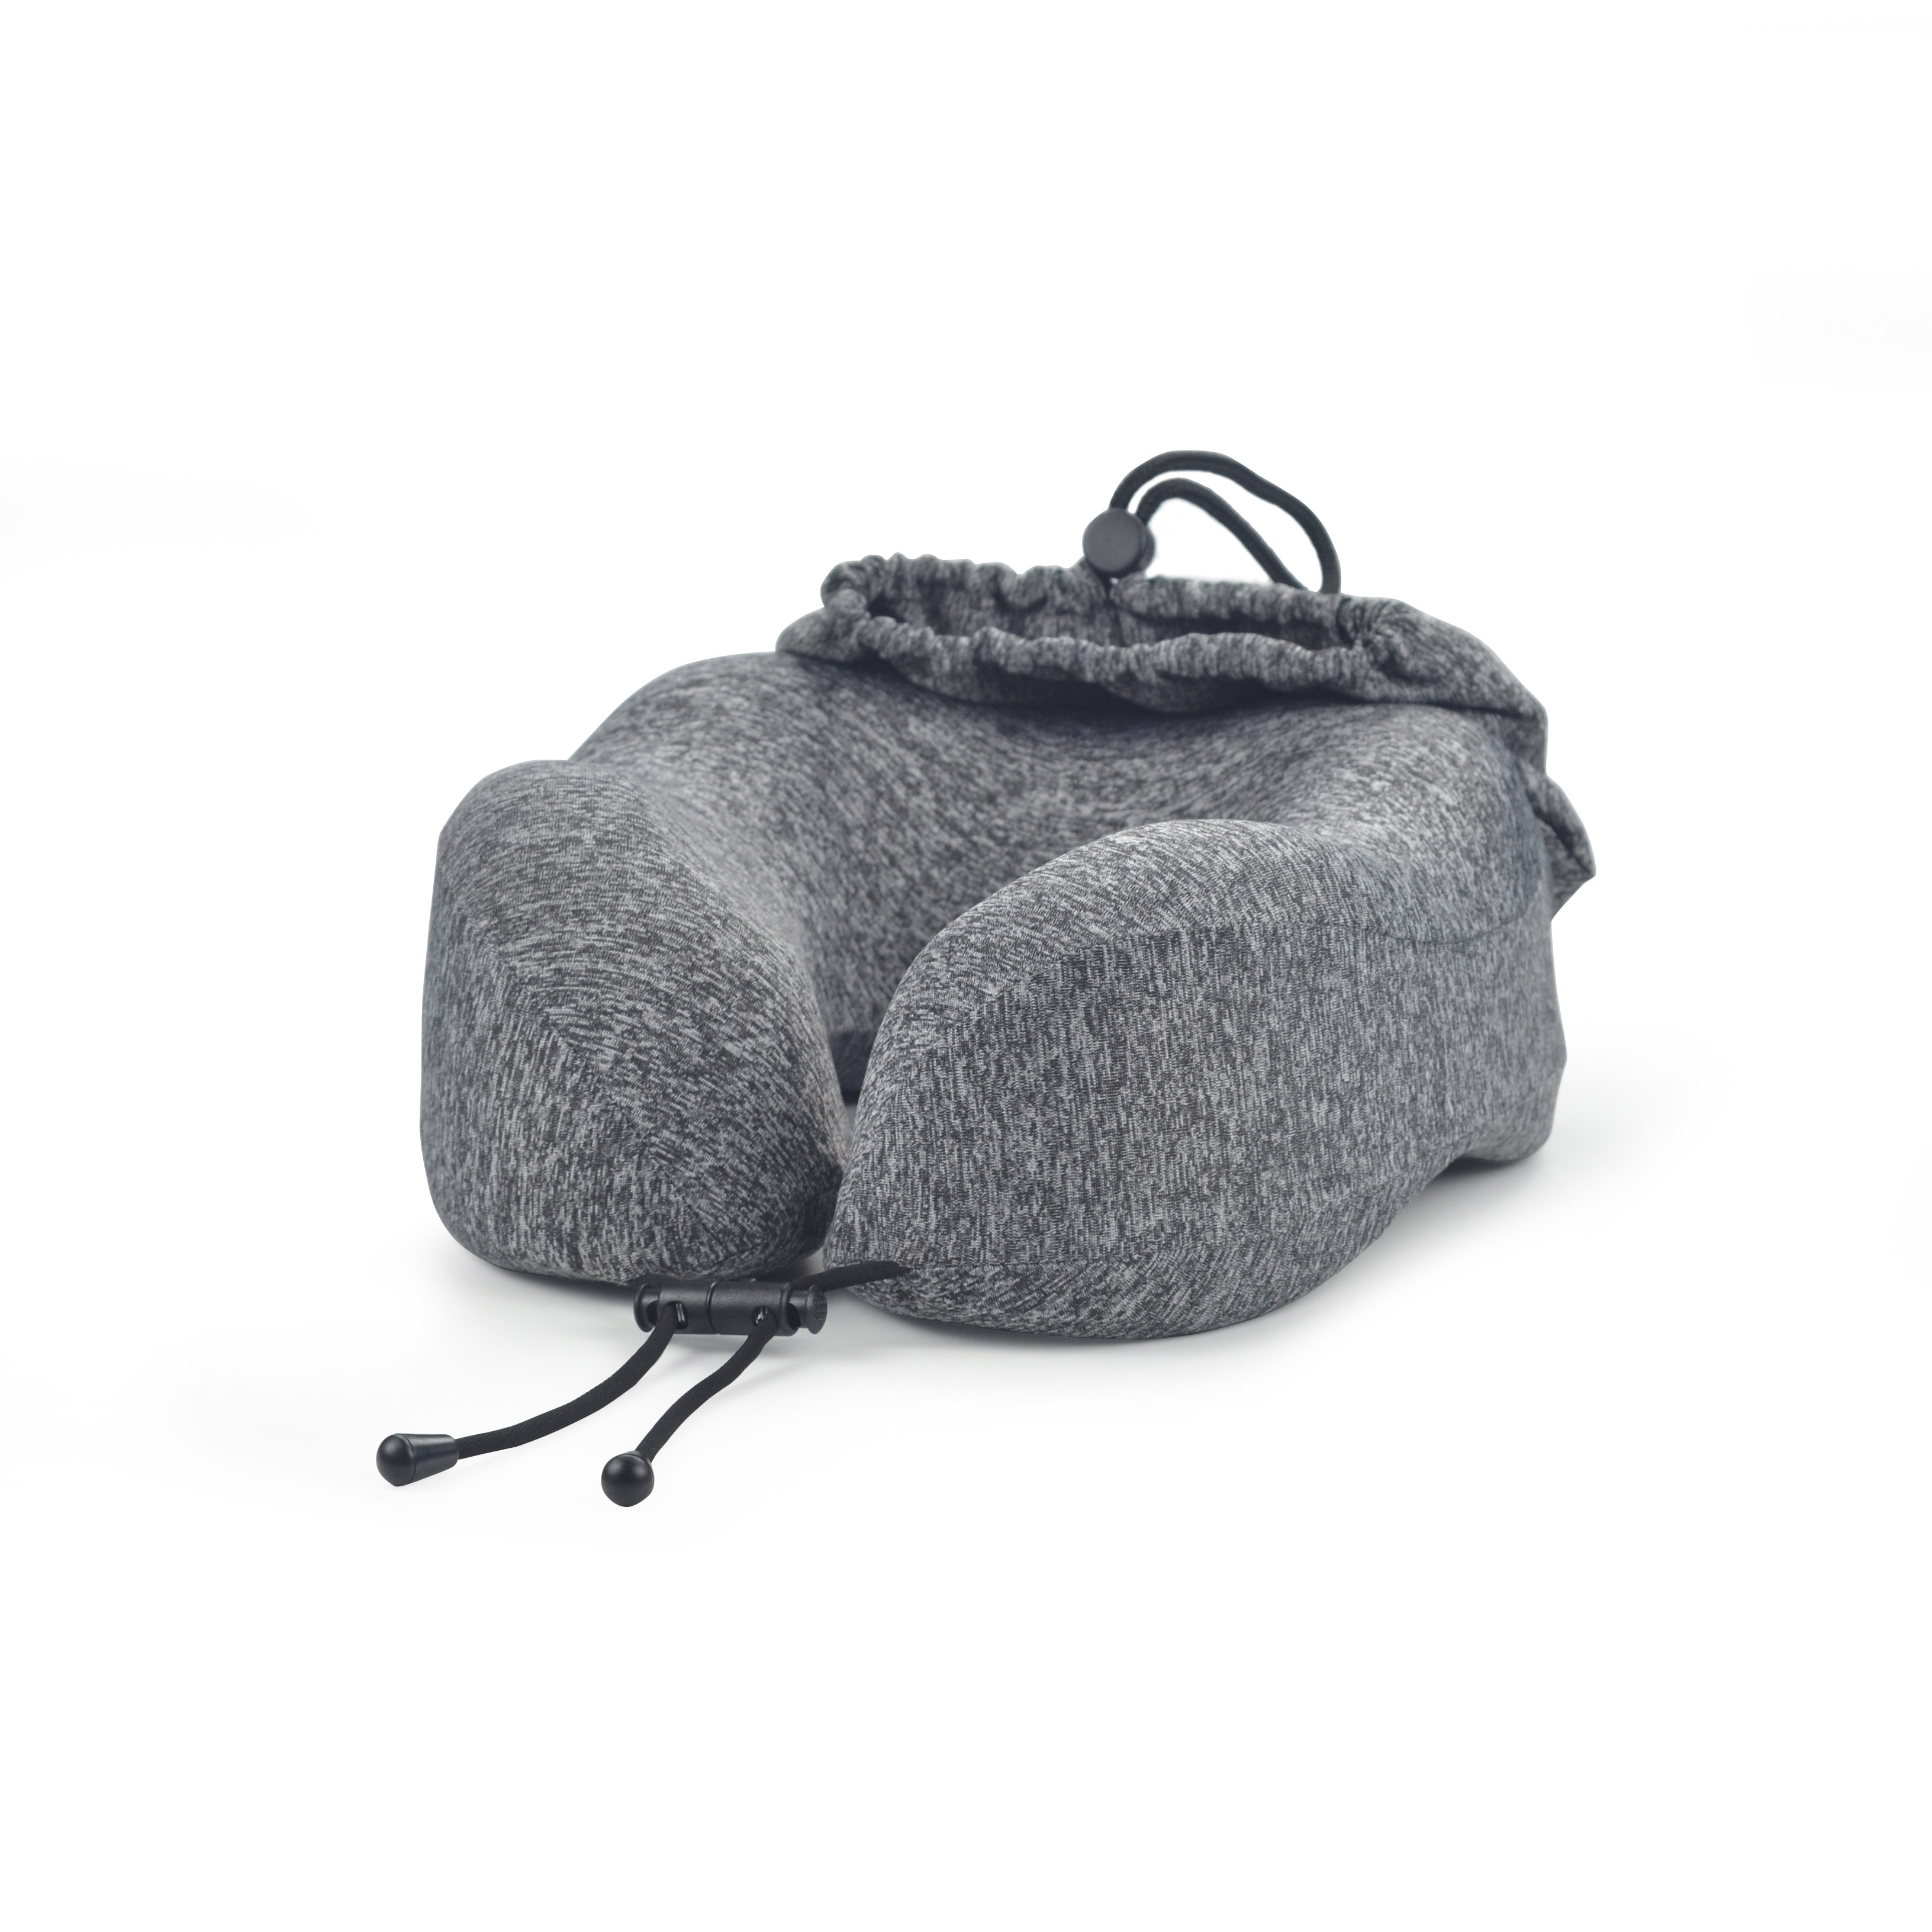 Self-contained custom travel pillow memory foam neck pillow with bag